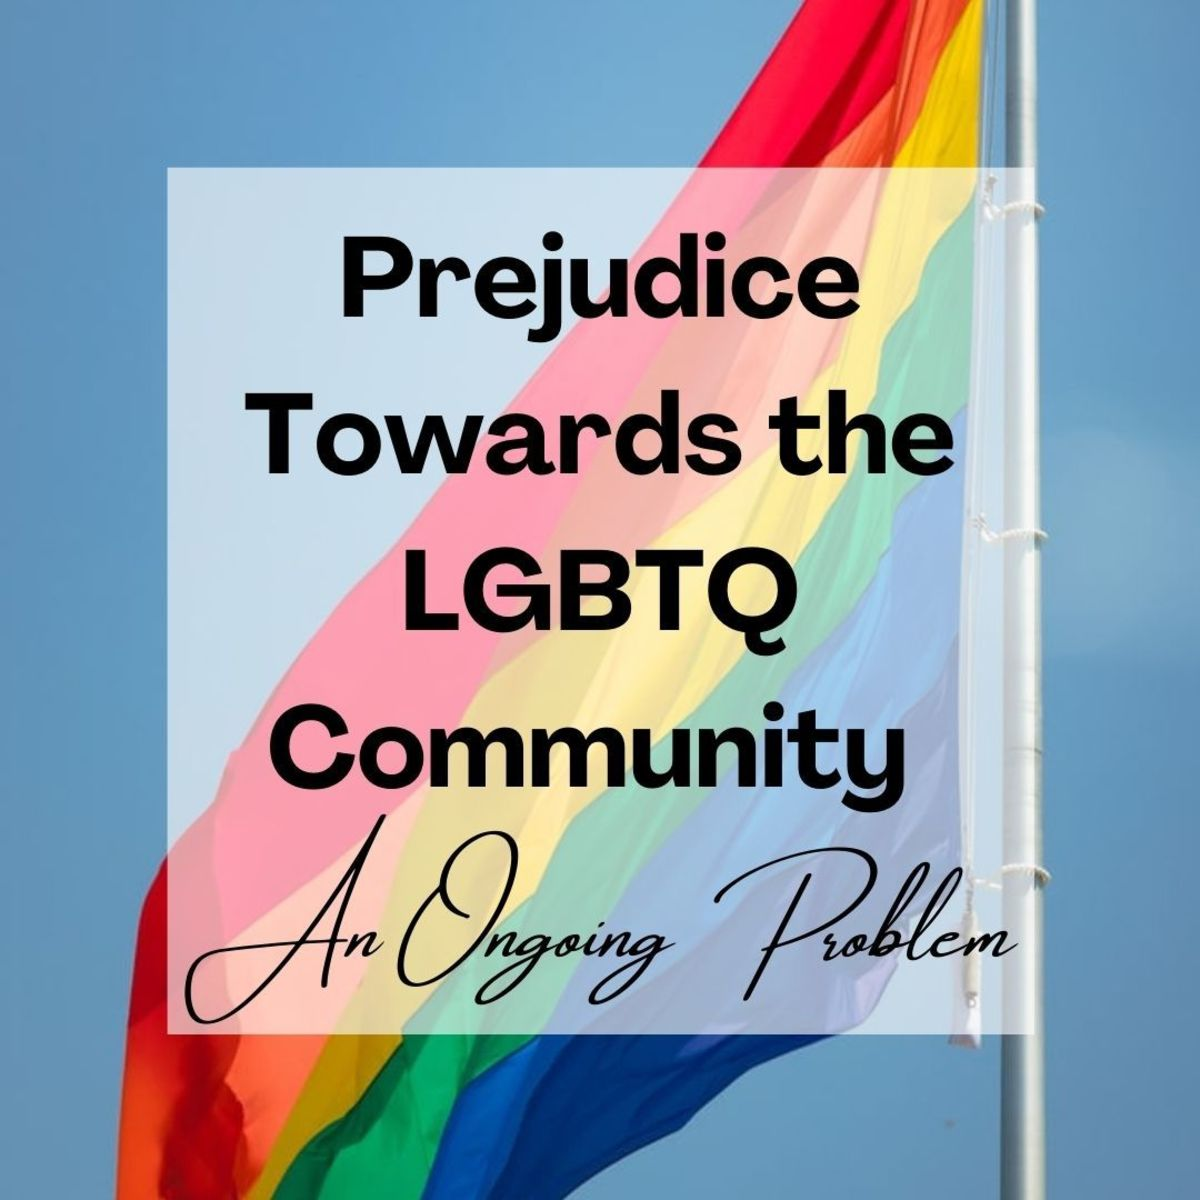 lgbt-irrational-prejudice-fears-and-bigotry-still-abound